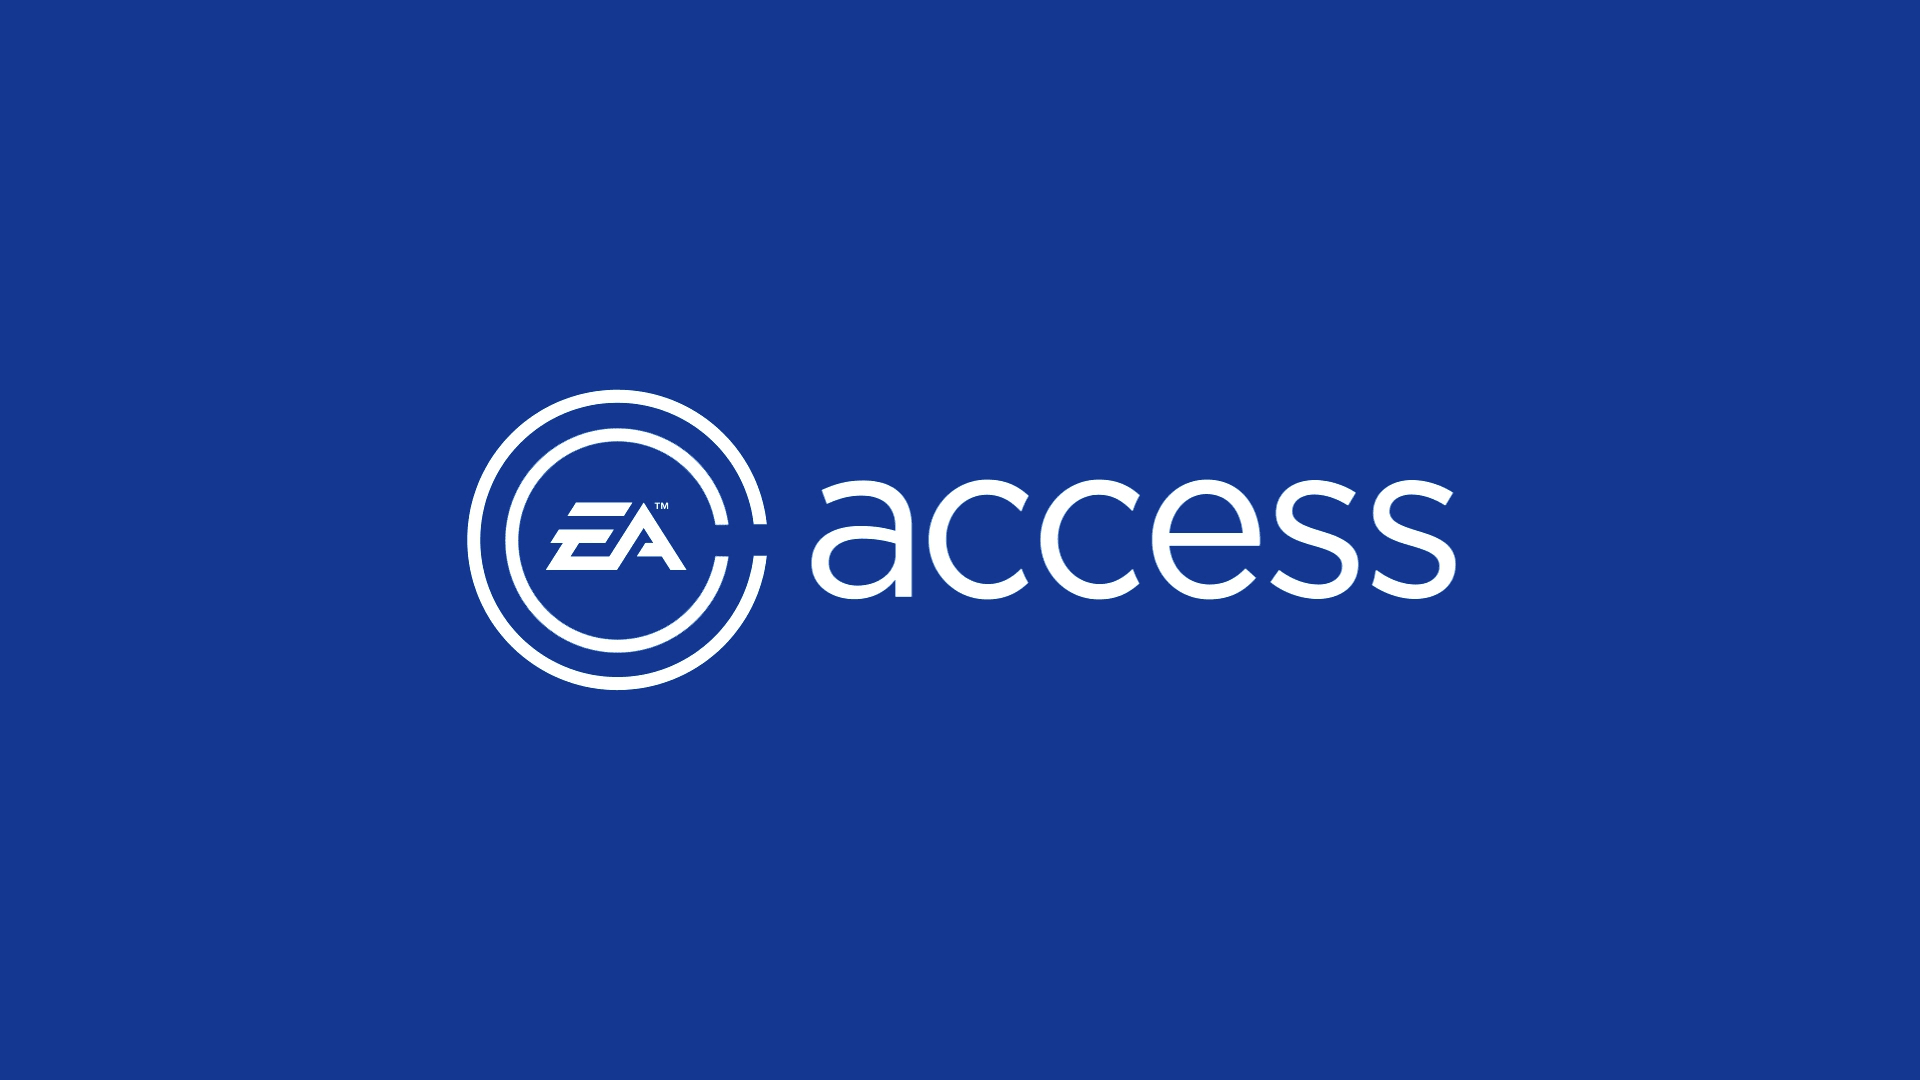 Battlefield 5 and A Way Out Coming to EA Access